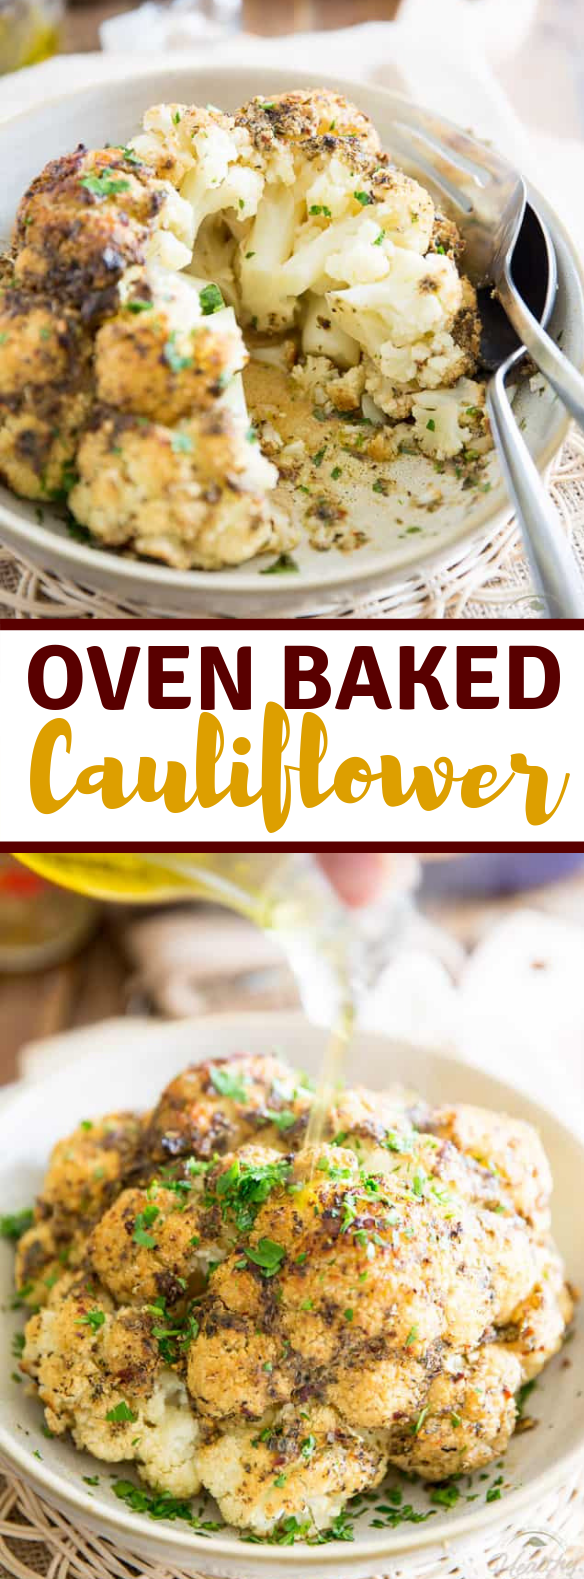 OVEN BAKED WHOLE ROASTED CAULIFLOWER #paleo #vegetarian